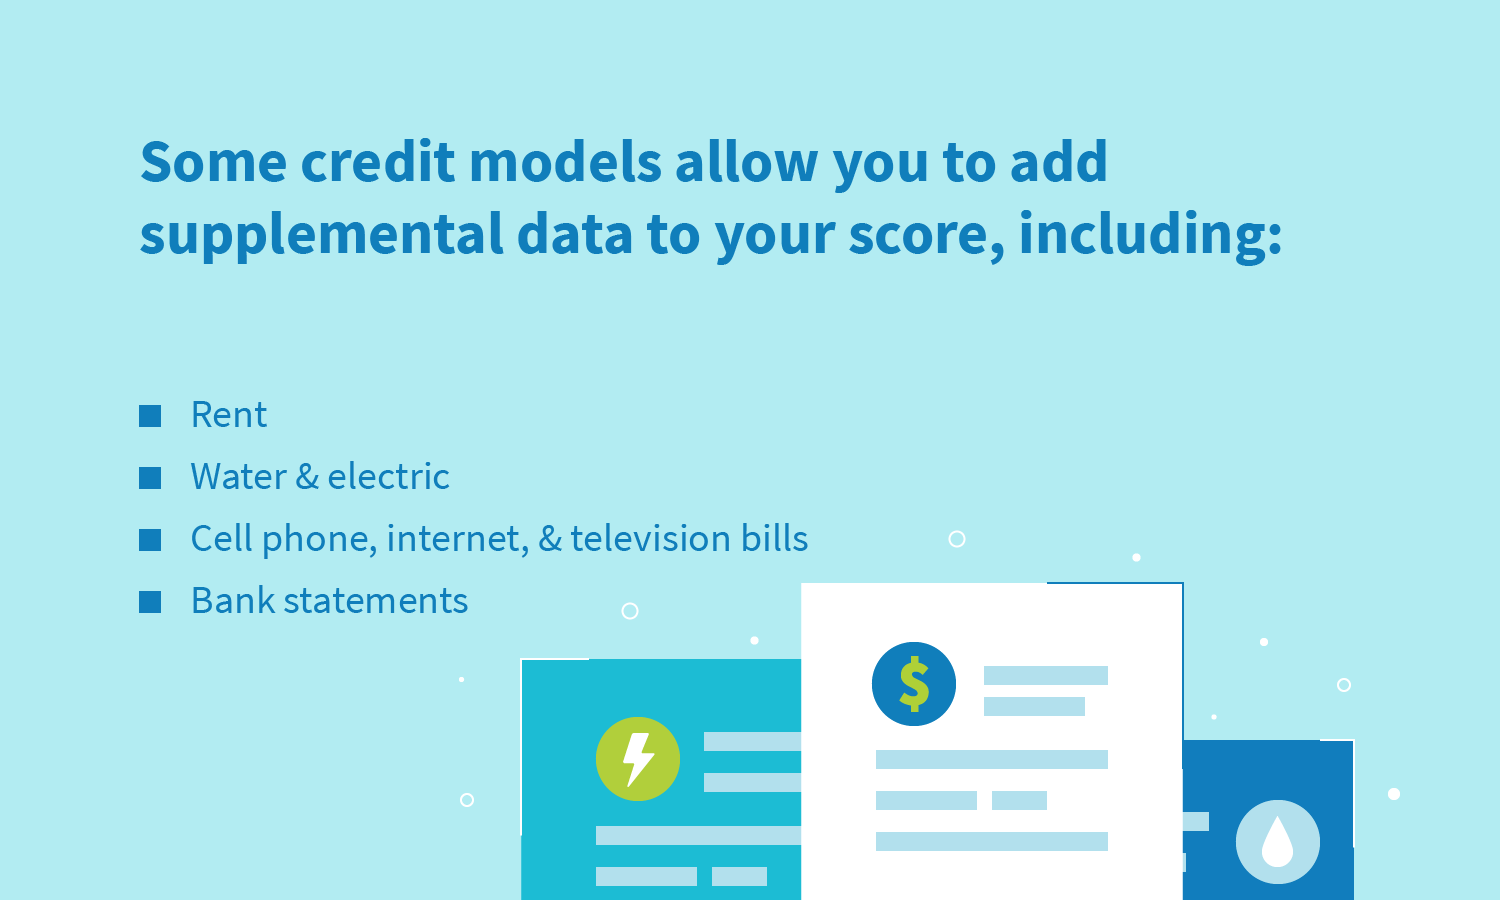 some credit models allow you to add supplemental data to your score: rent, water & electric, cell phone, bank statements